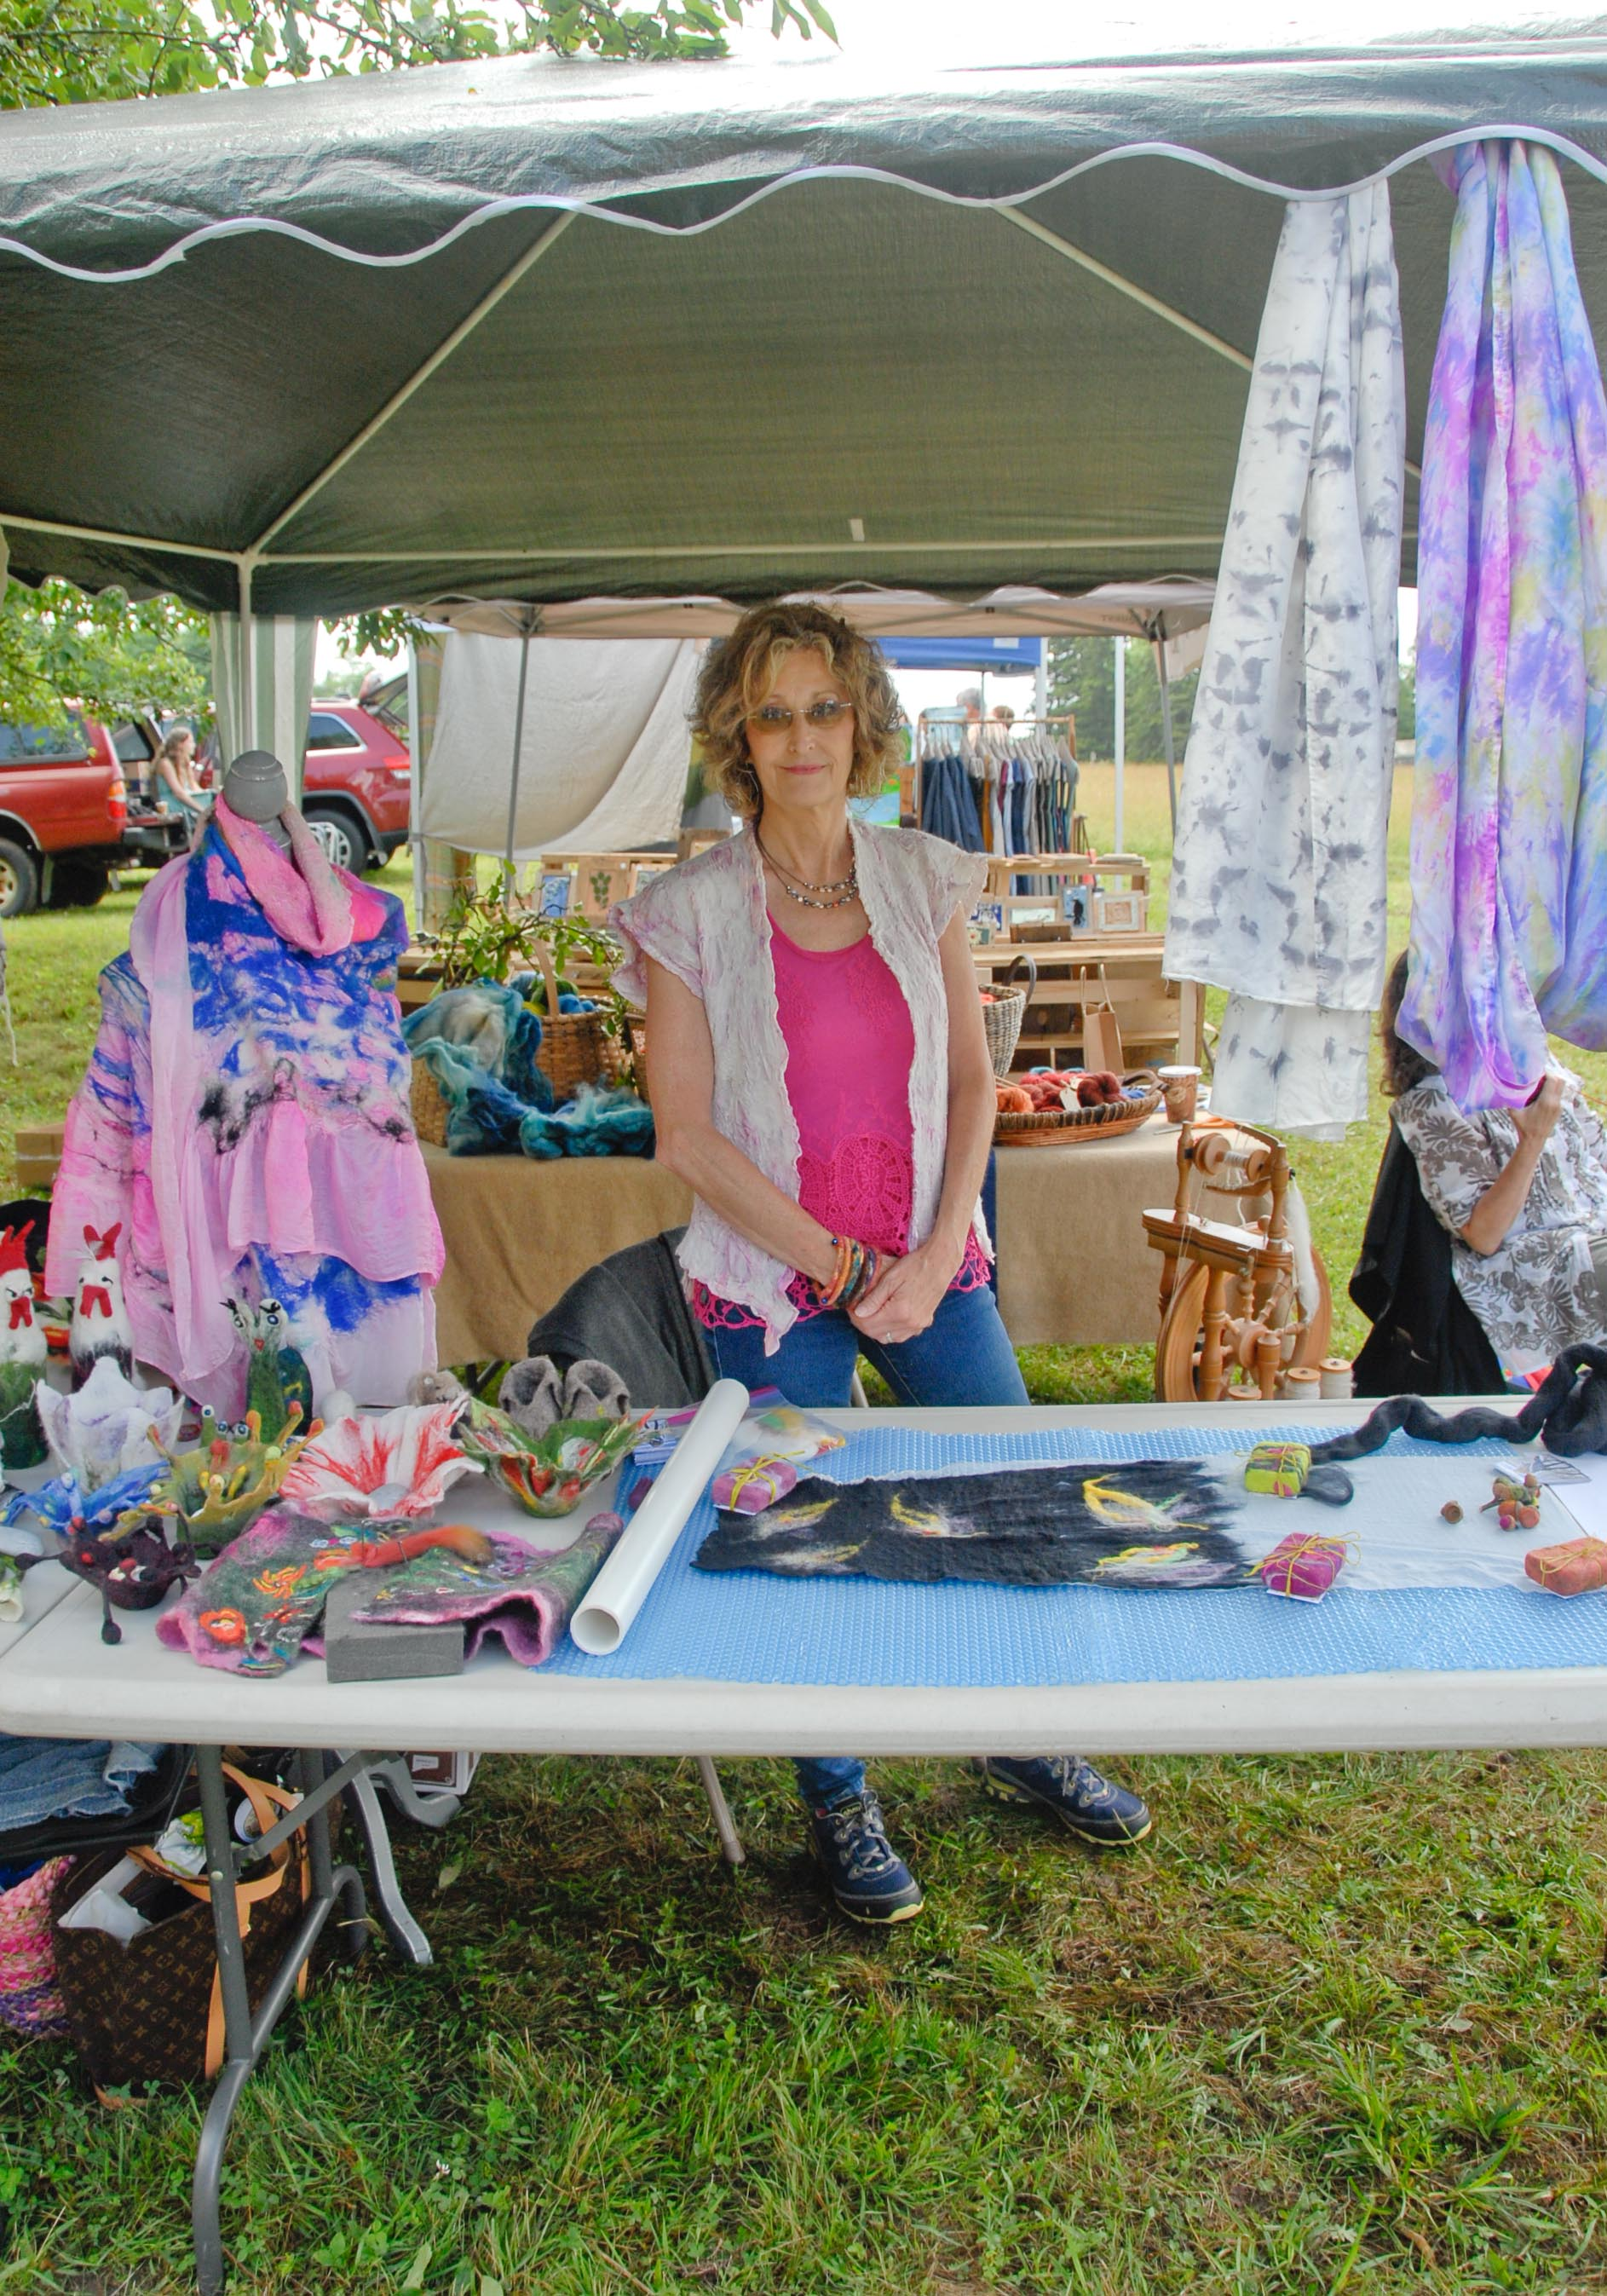 Debbie Drumm and her Silk Dyeing & Nuno Felting Exhibit